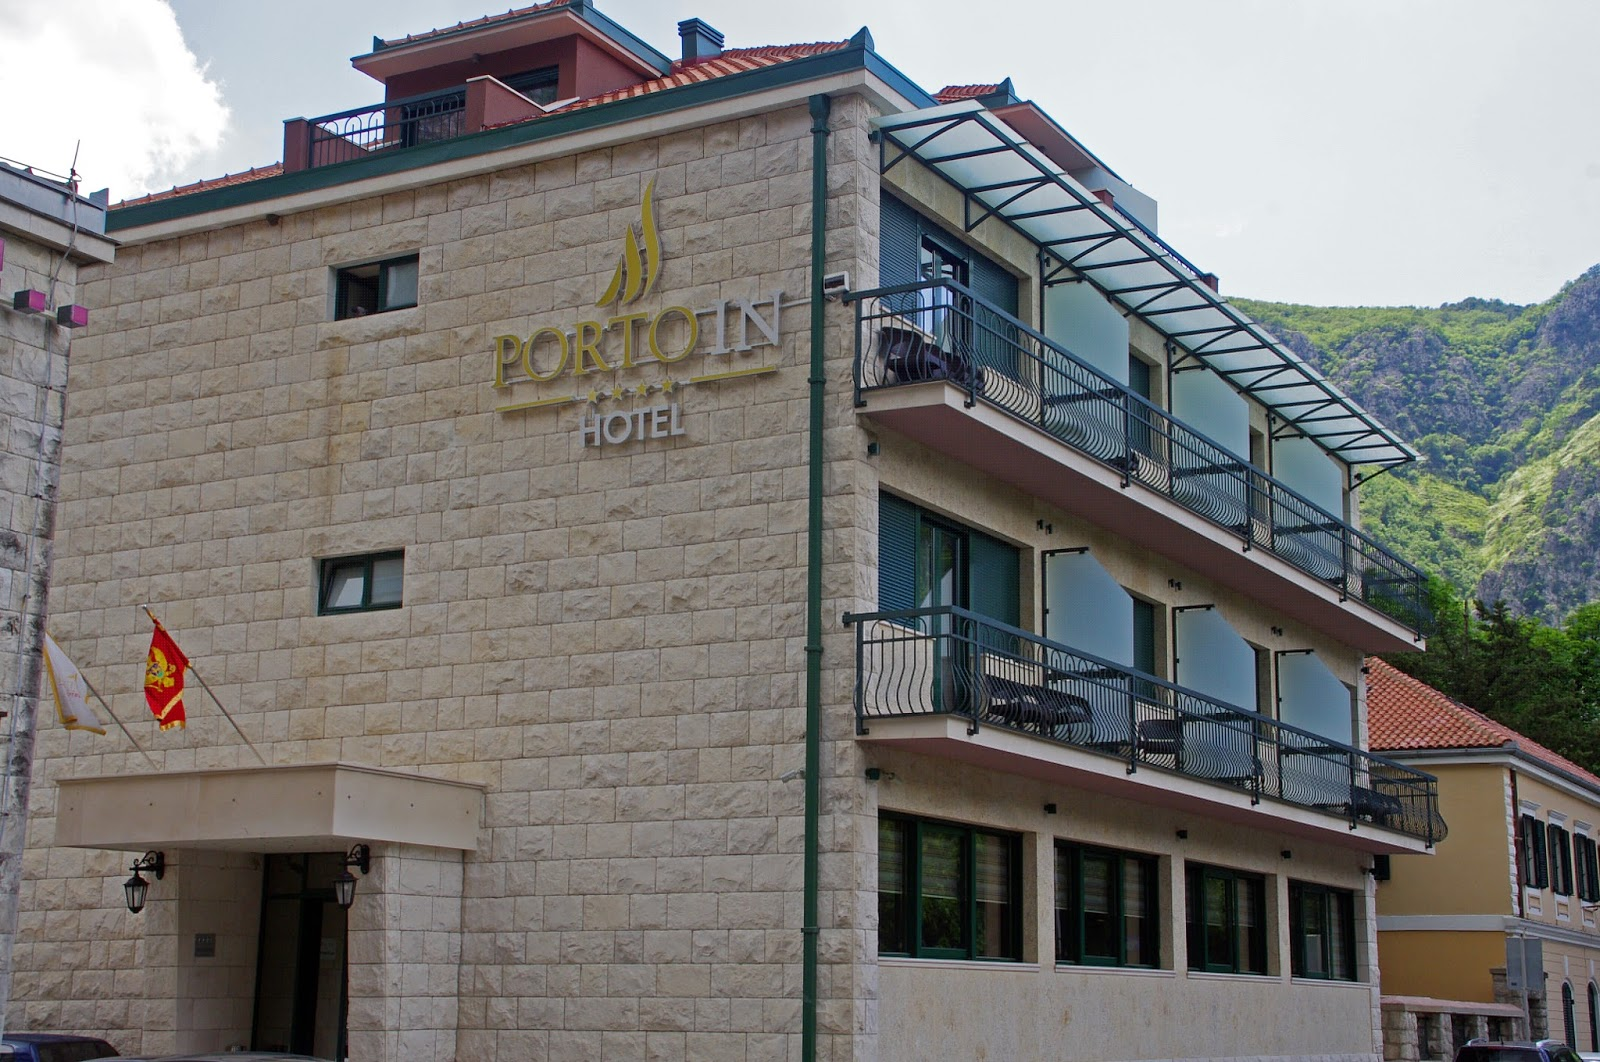 Hotel Porto In: A Charming Boutique Hotel in Beautiful Kotor